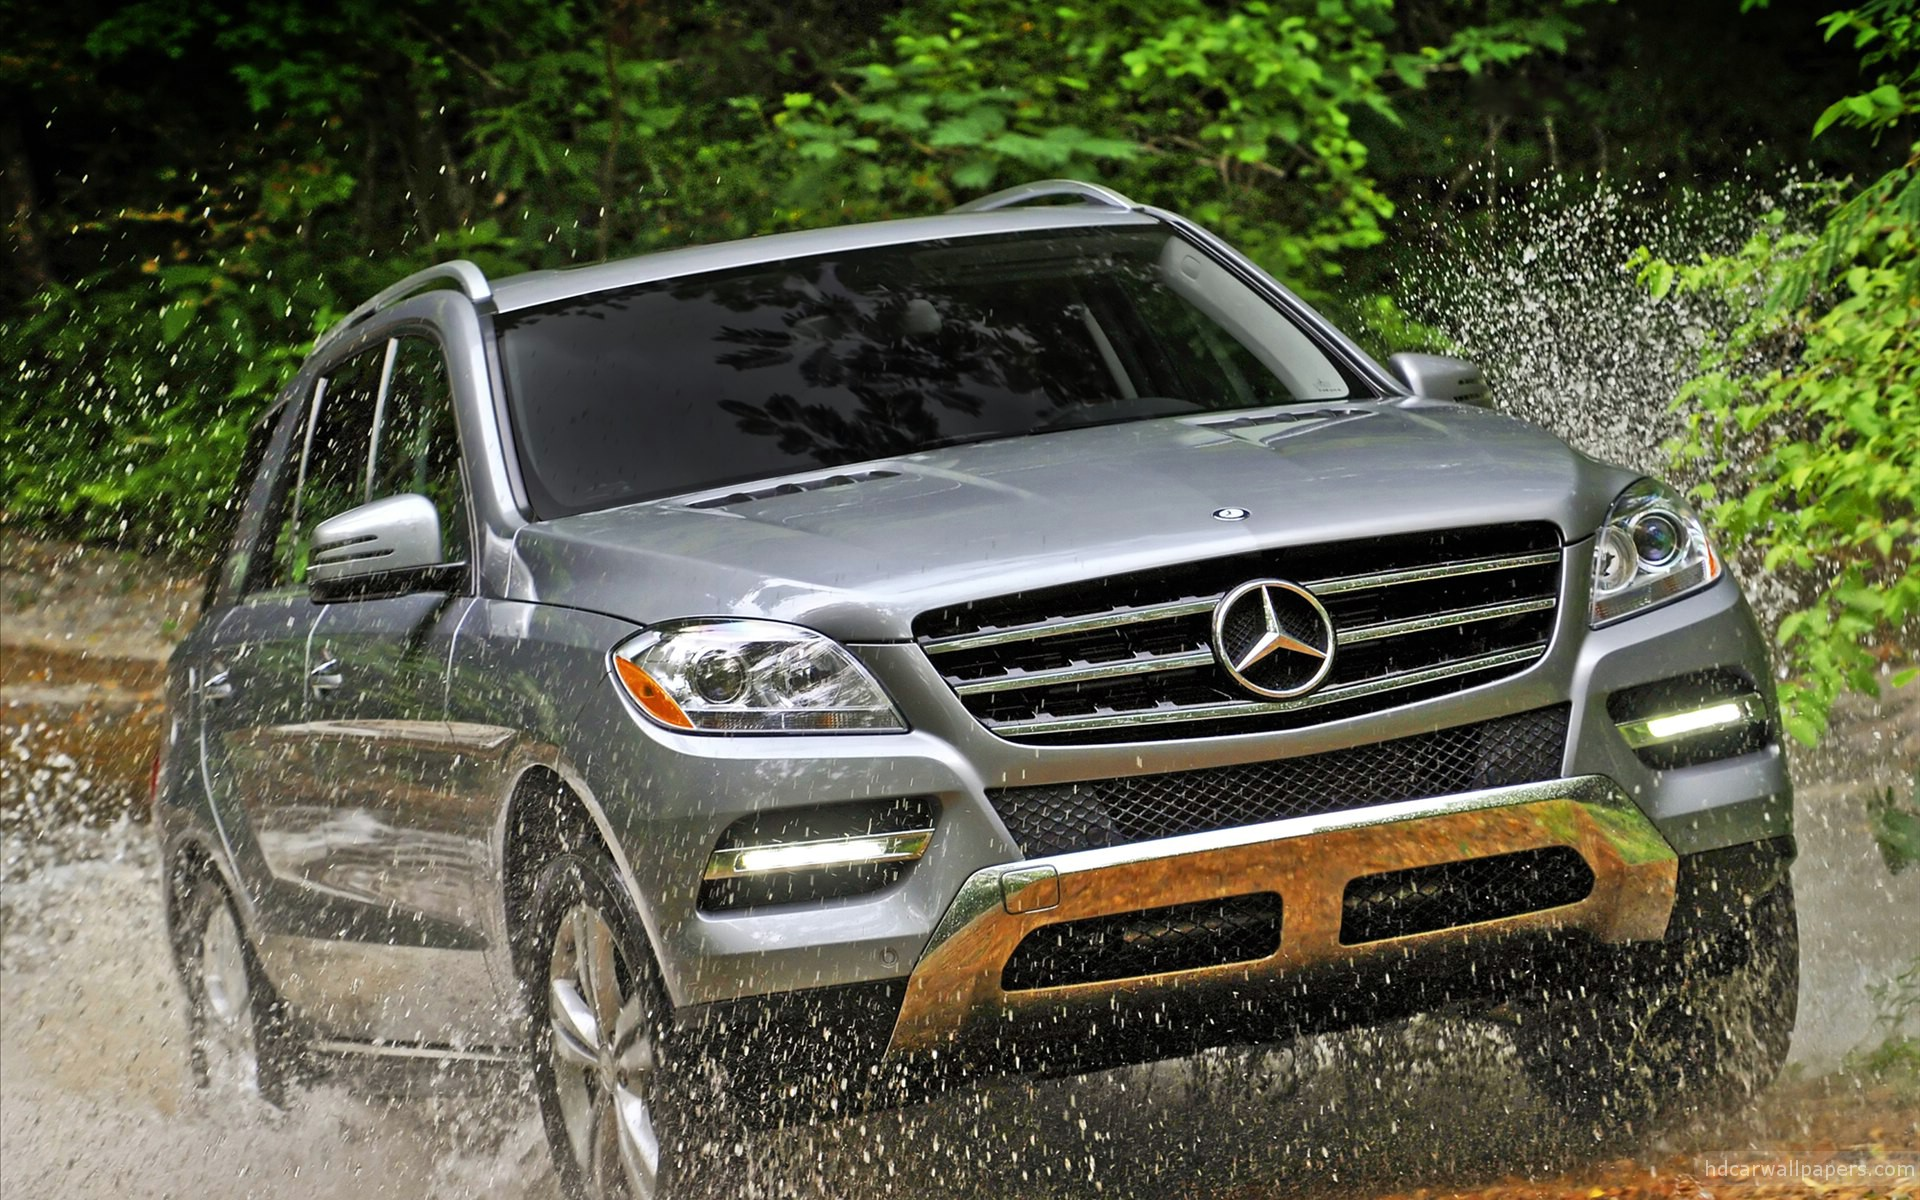 2012 mercedes benz ml350 wallpaper hd car wallpapers id. Black Bedroom Furniture Sets. Home Design Ideas